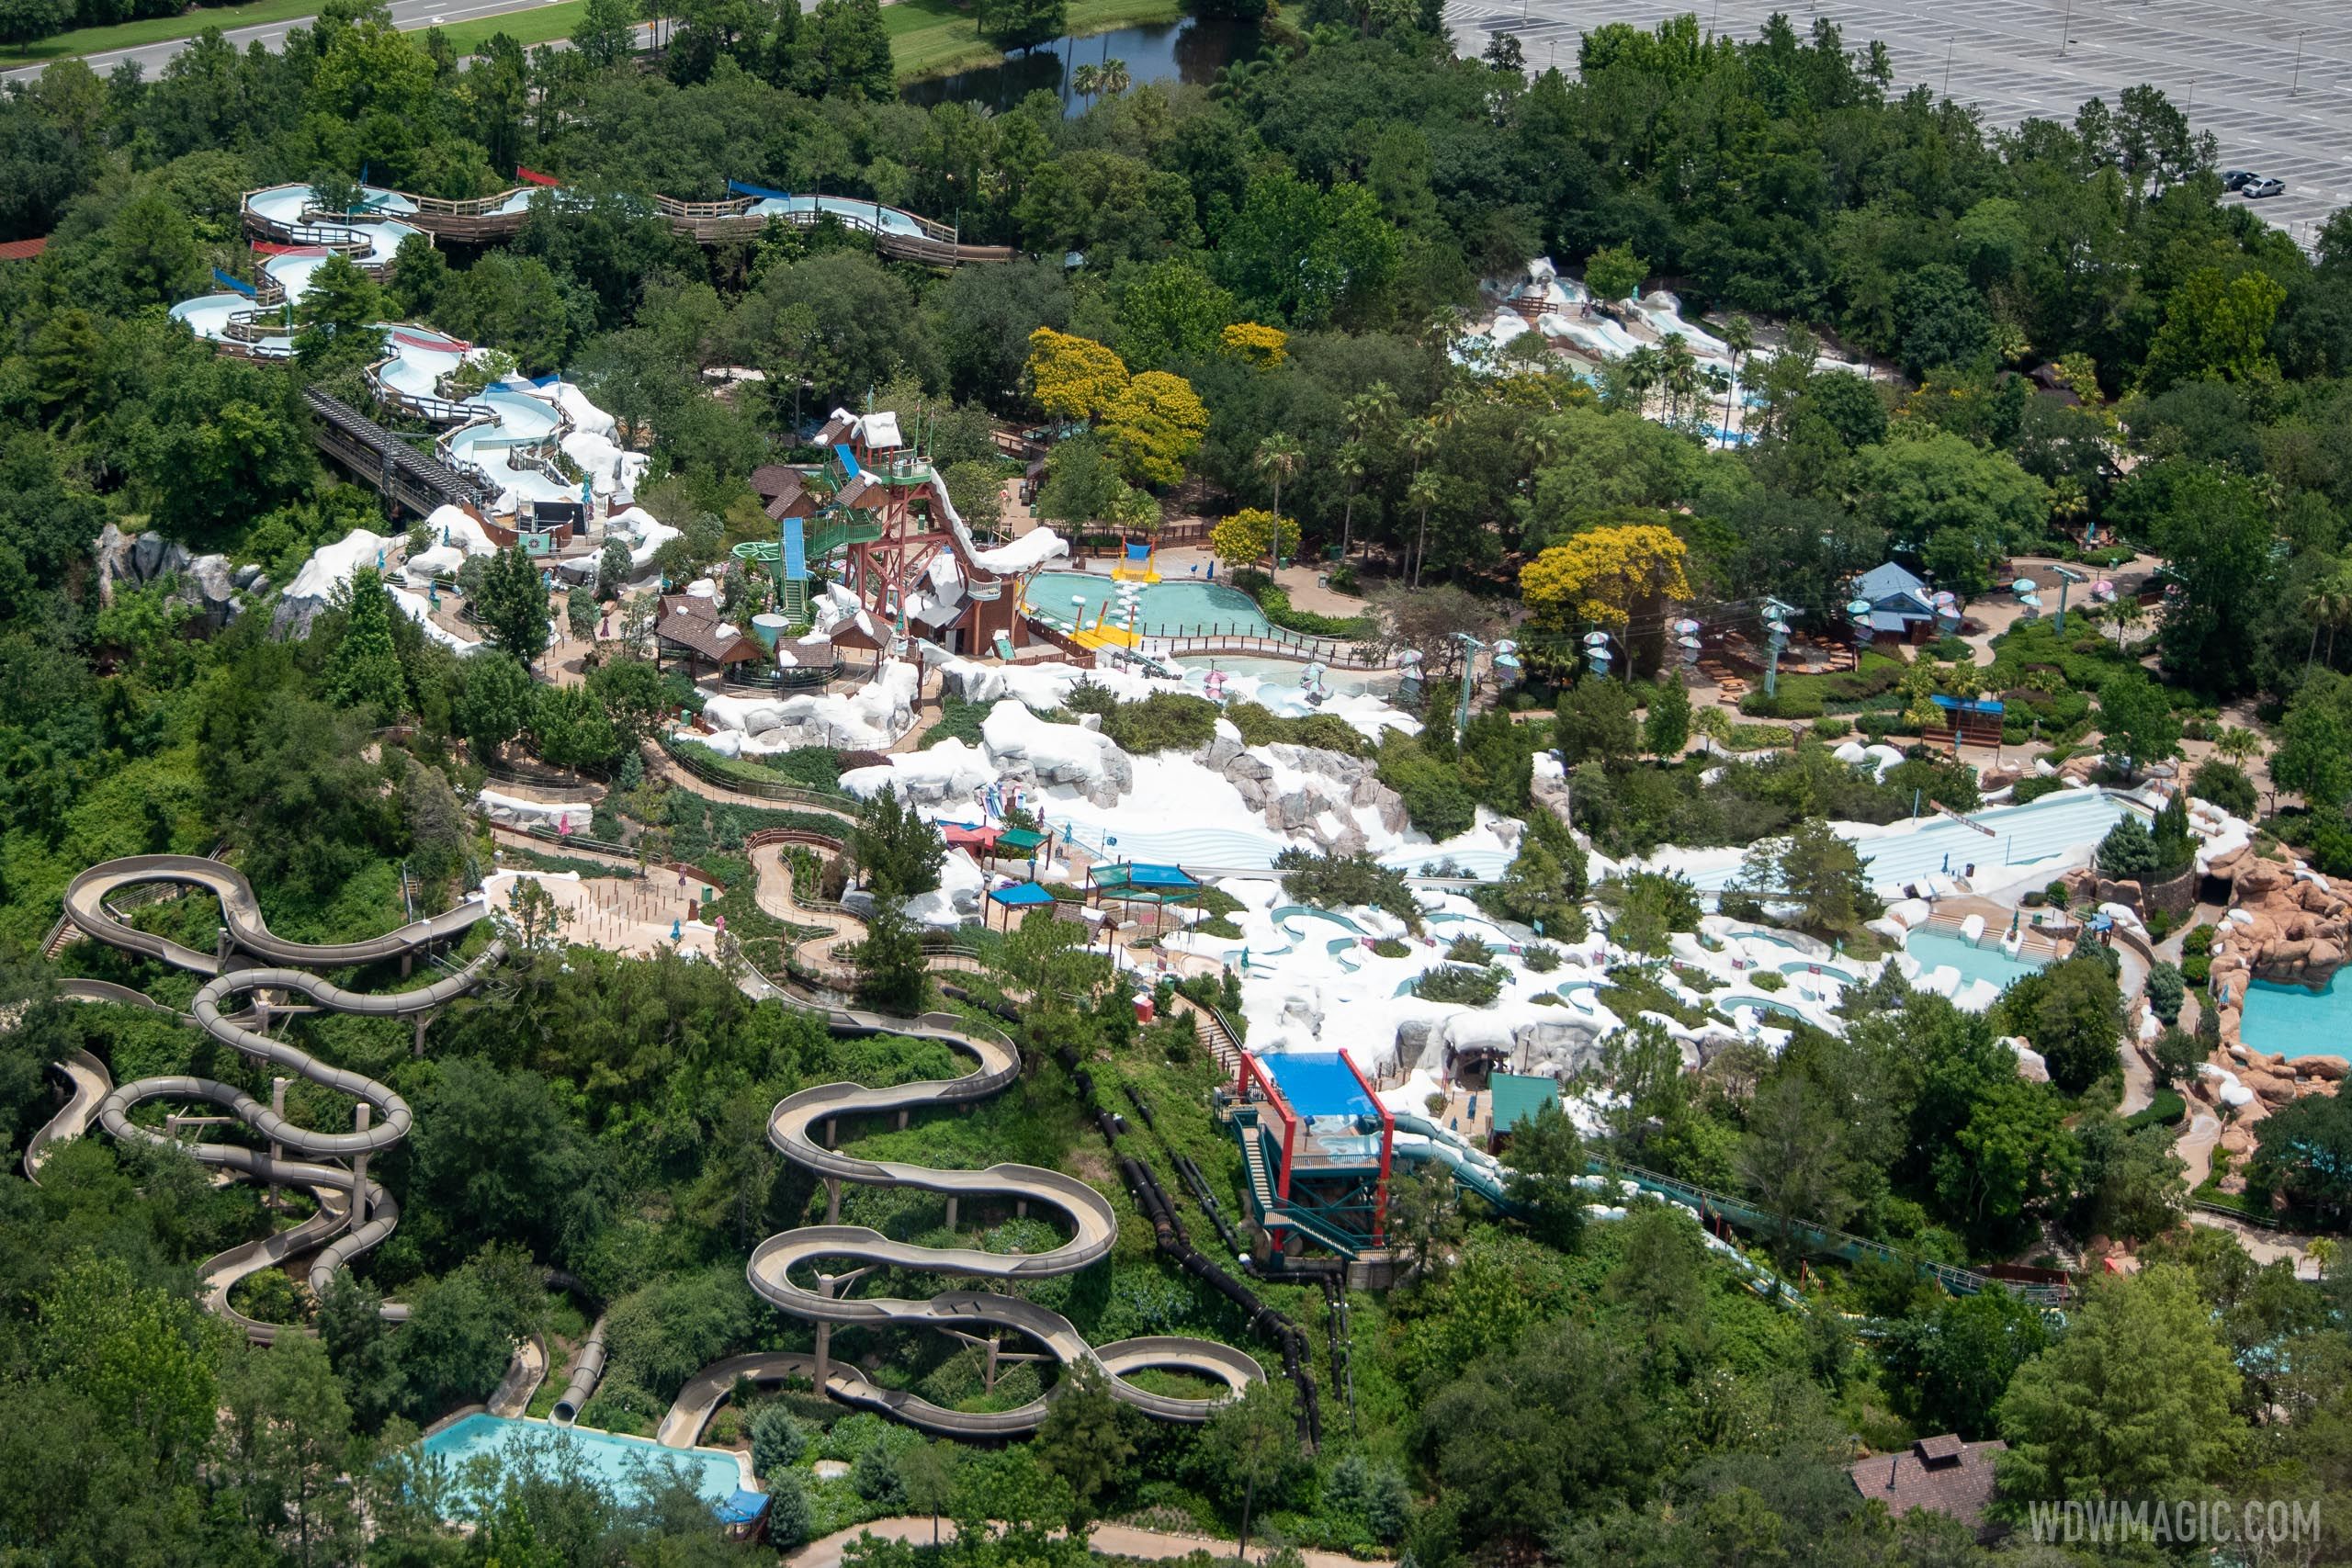 Aerial views of Blizzard Beach and Typhoon Lagoon during COVID-19 closure